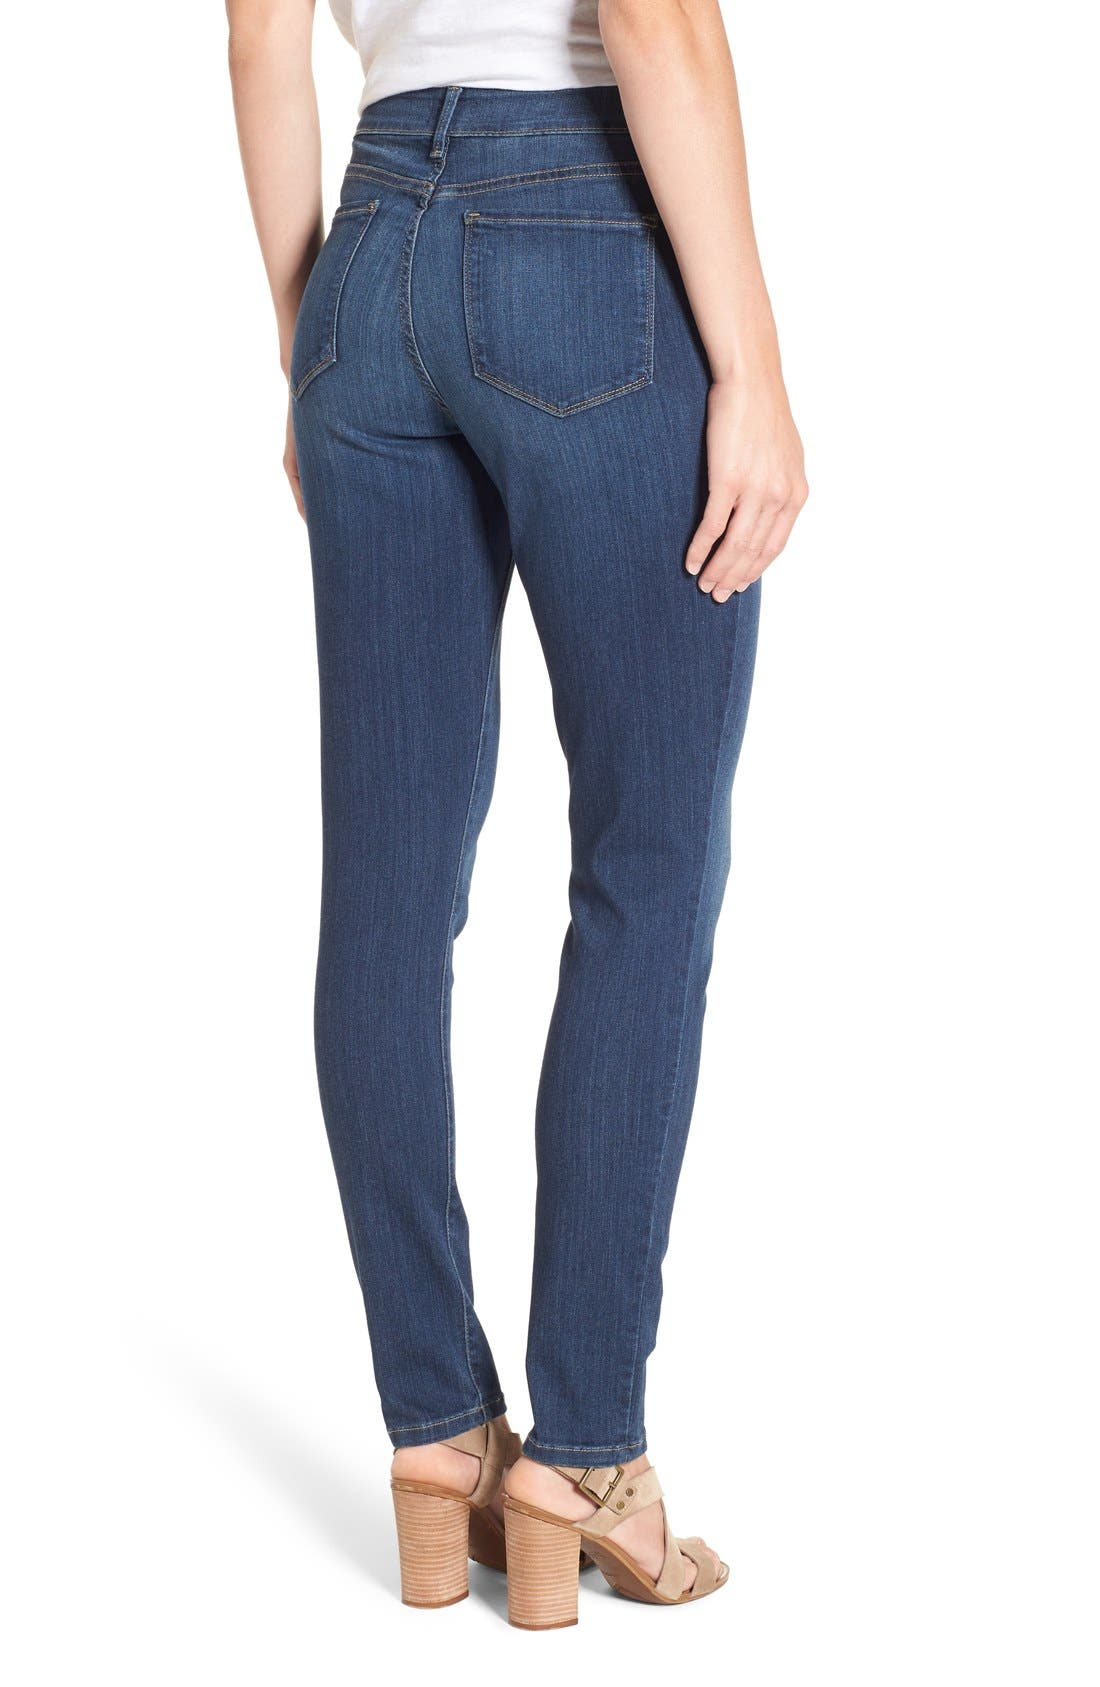 'Ami' Stretch Skinny Jeans,                         Main,                         color, 428